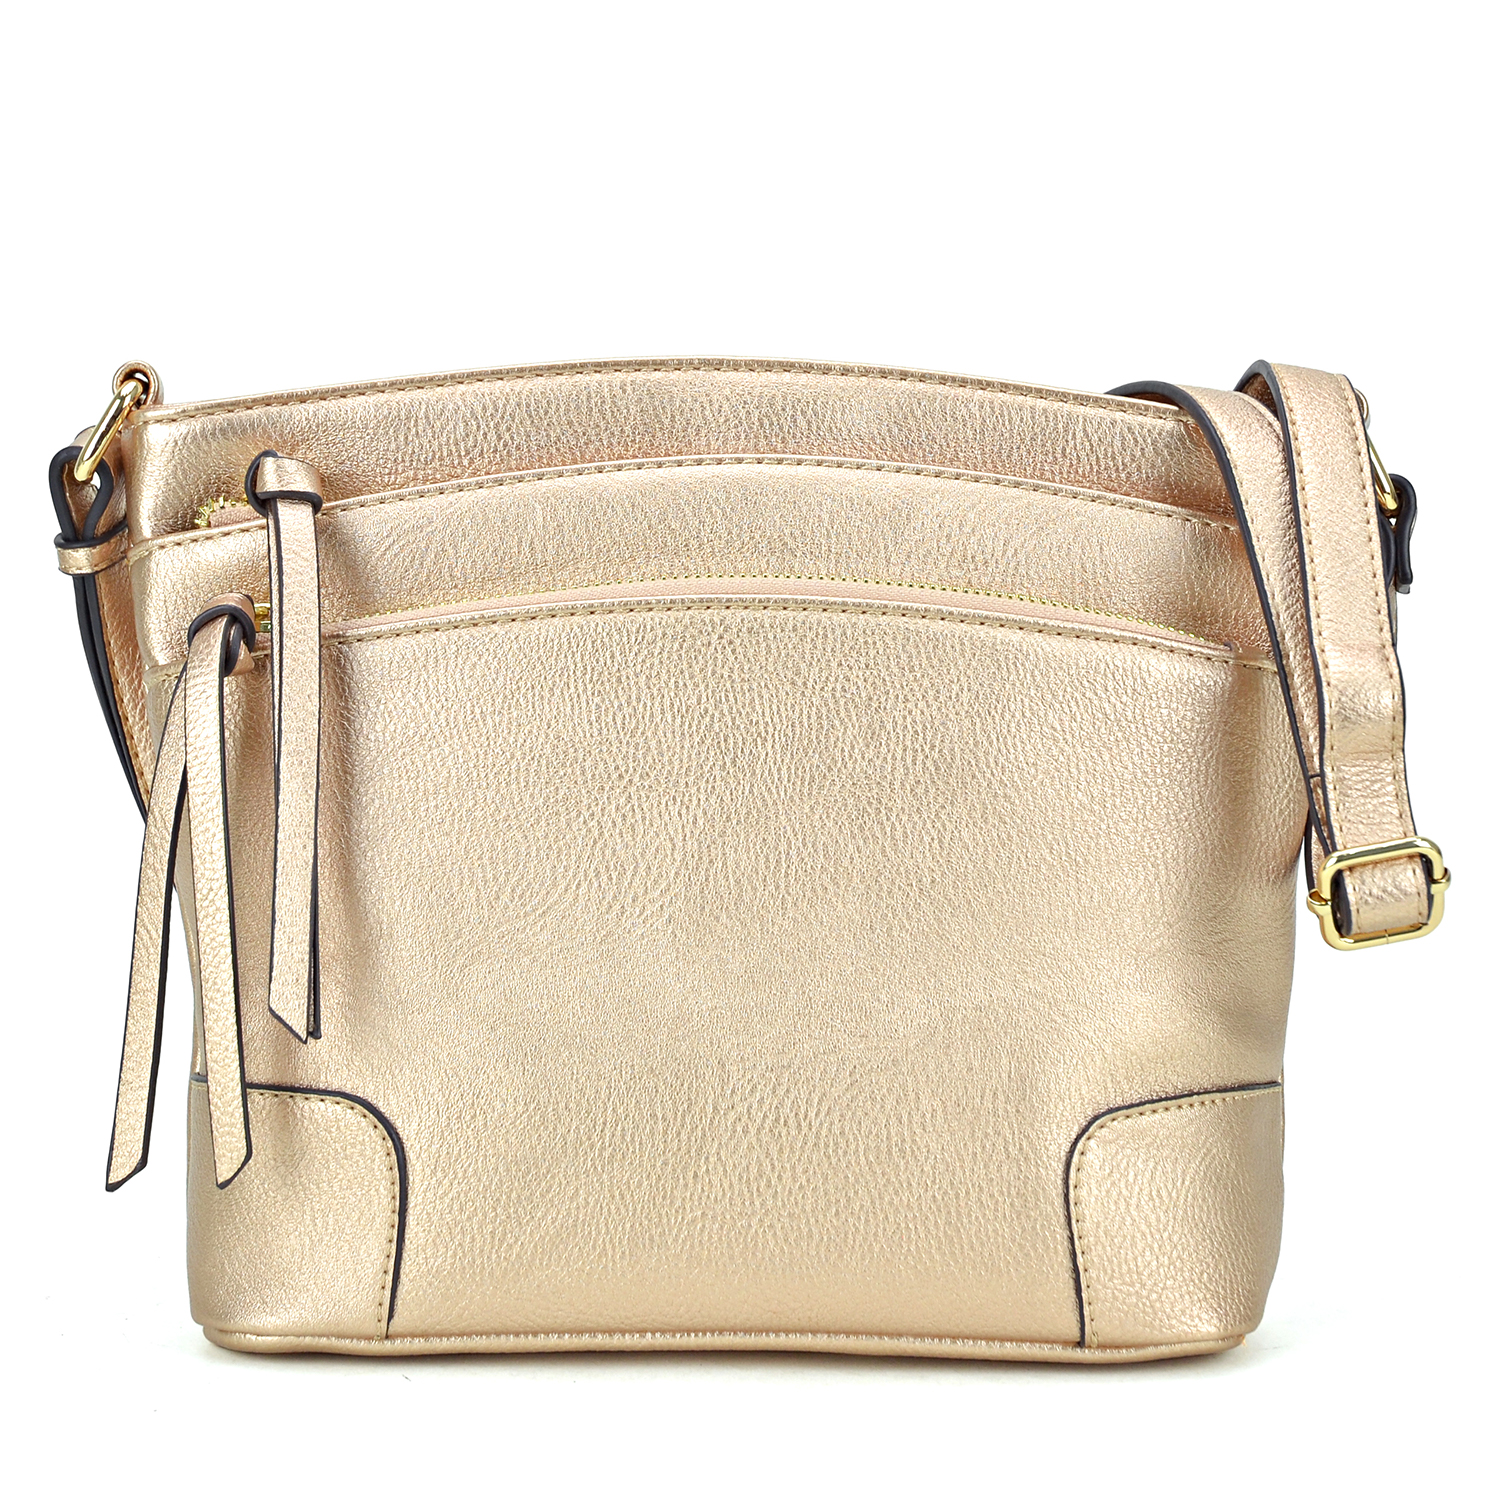 All-In-One Crossbody/ Messenger Bag with Double-zipped front compartment with decorative tassel pull